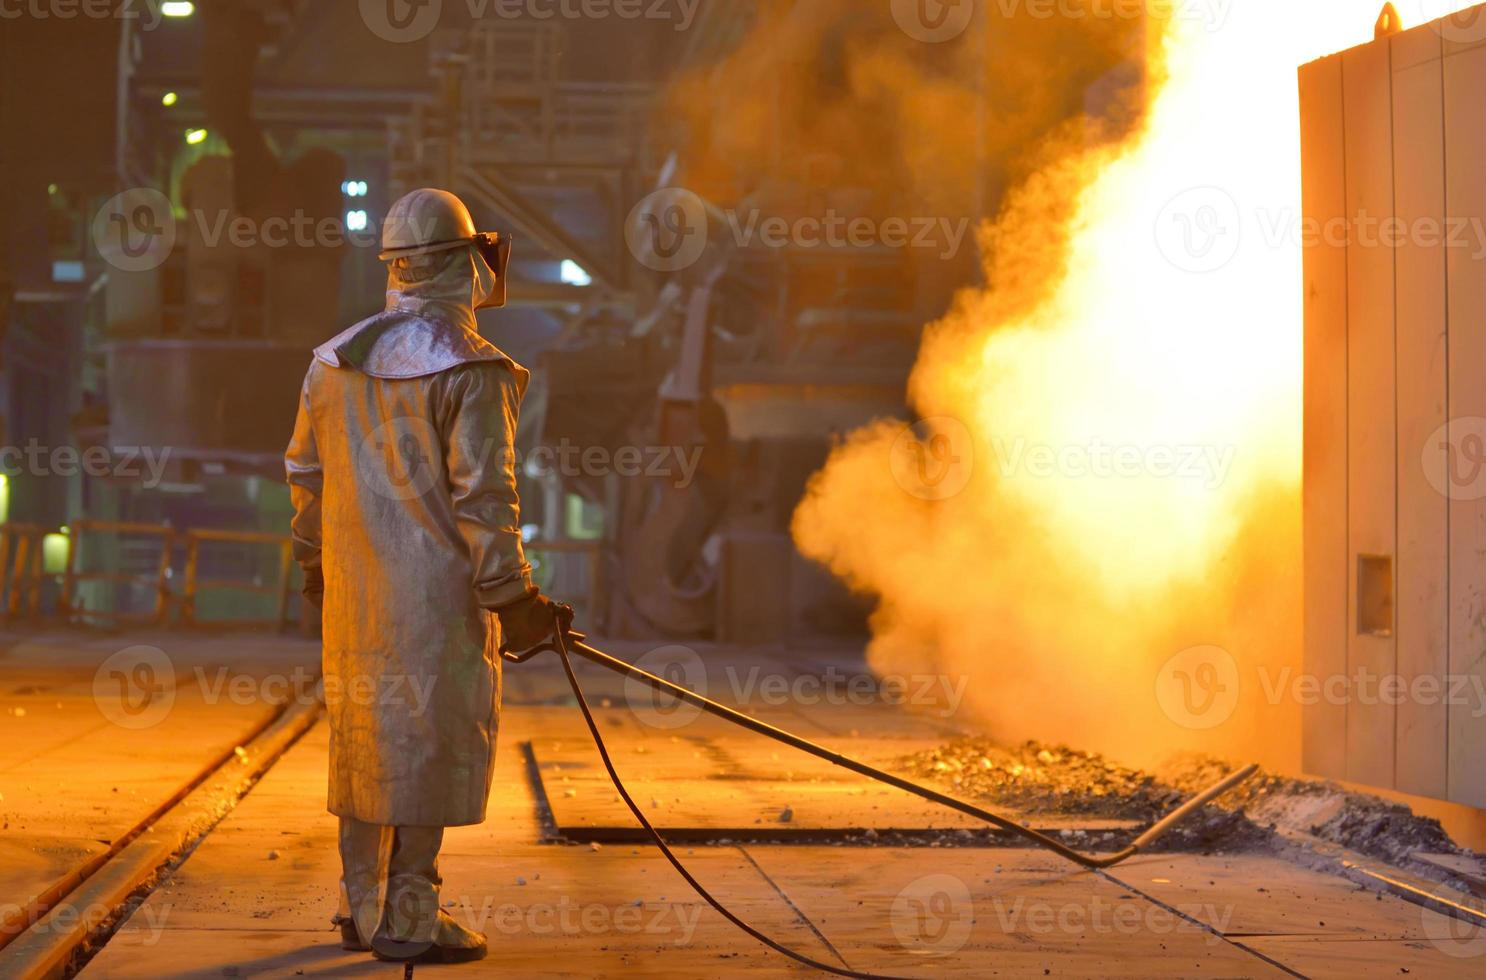 Smelting furnace and worker photo